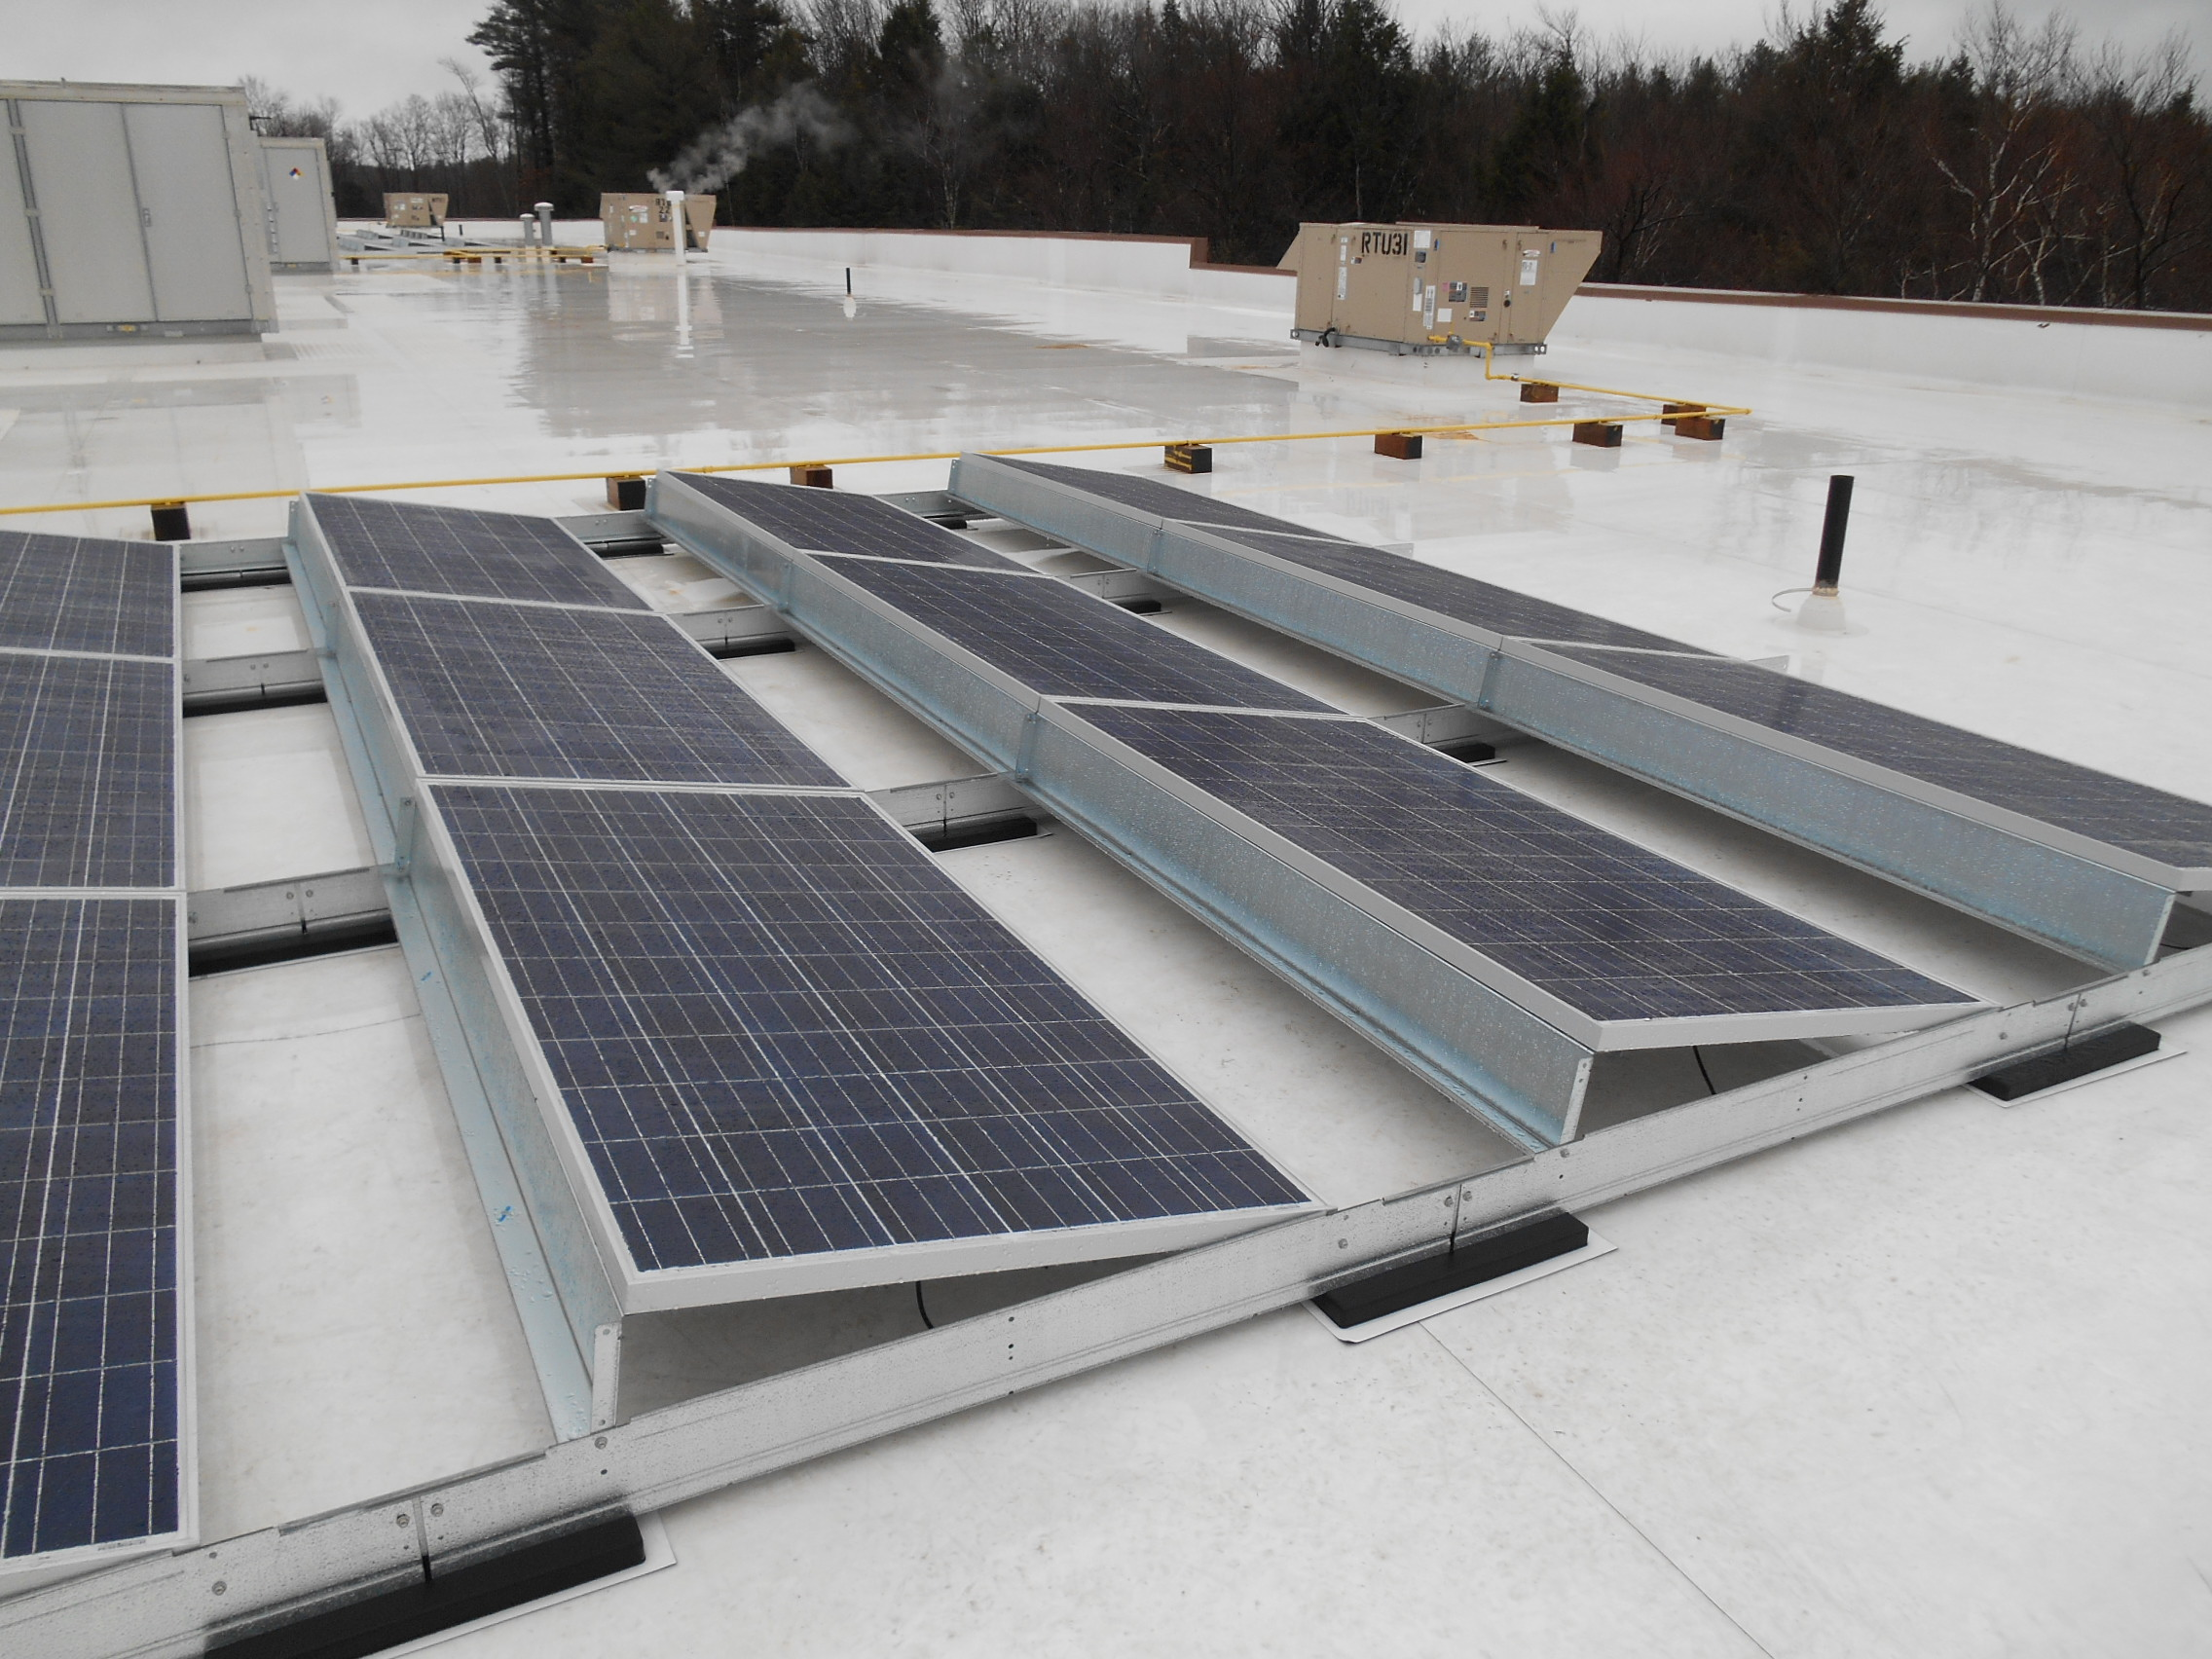 New Racking System For Rooftop Solar Panel Installations